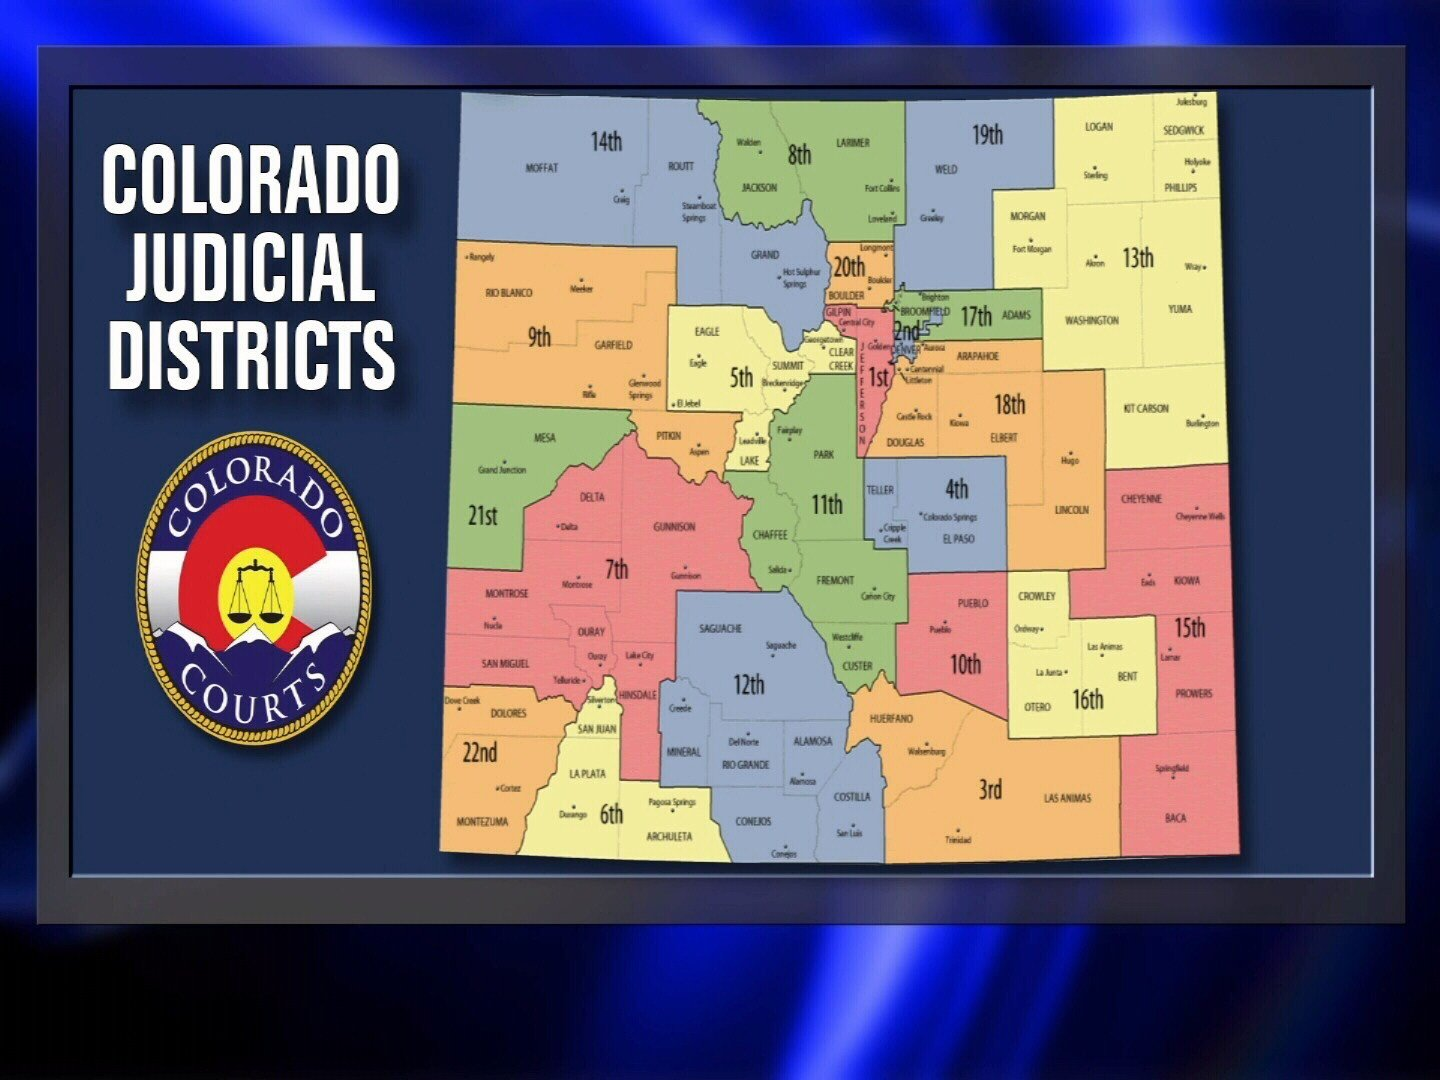 Felony case filings in Colorado grew by an average of 22 percent between 2015 and 2017